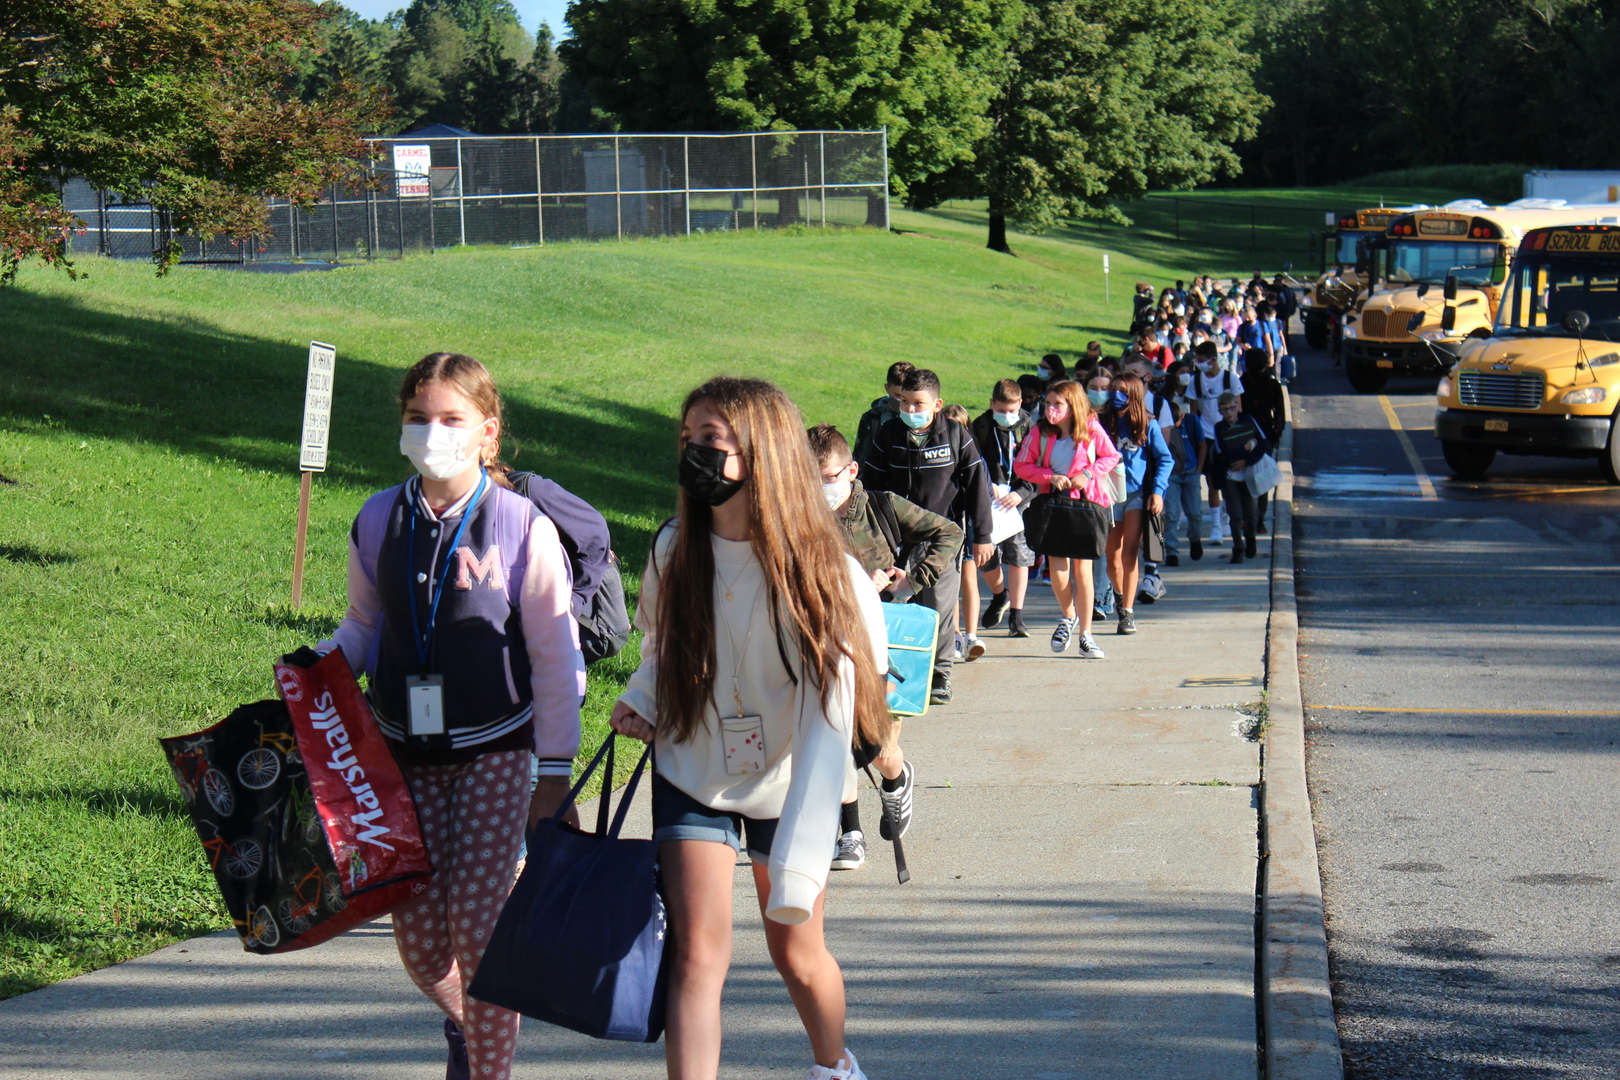 Students enter George Fischer Middle School from buses